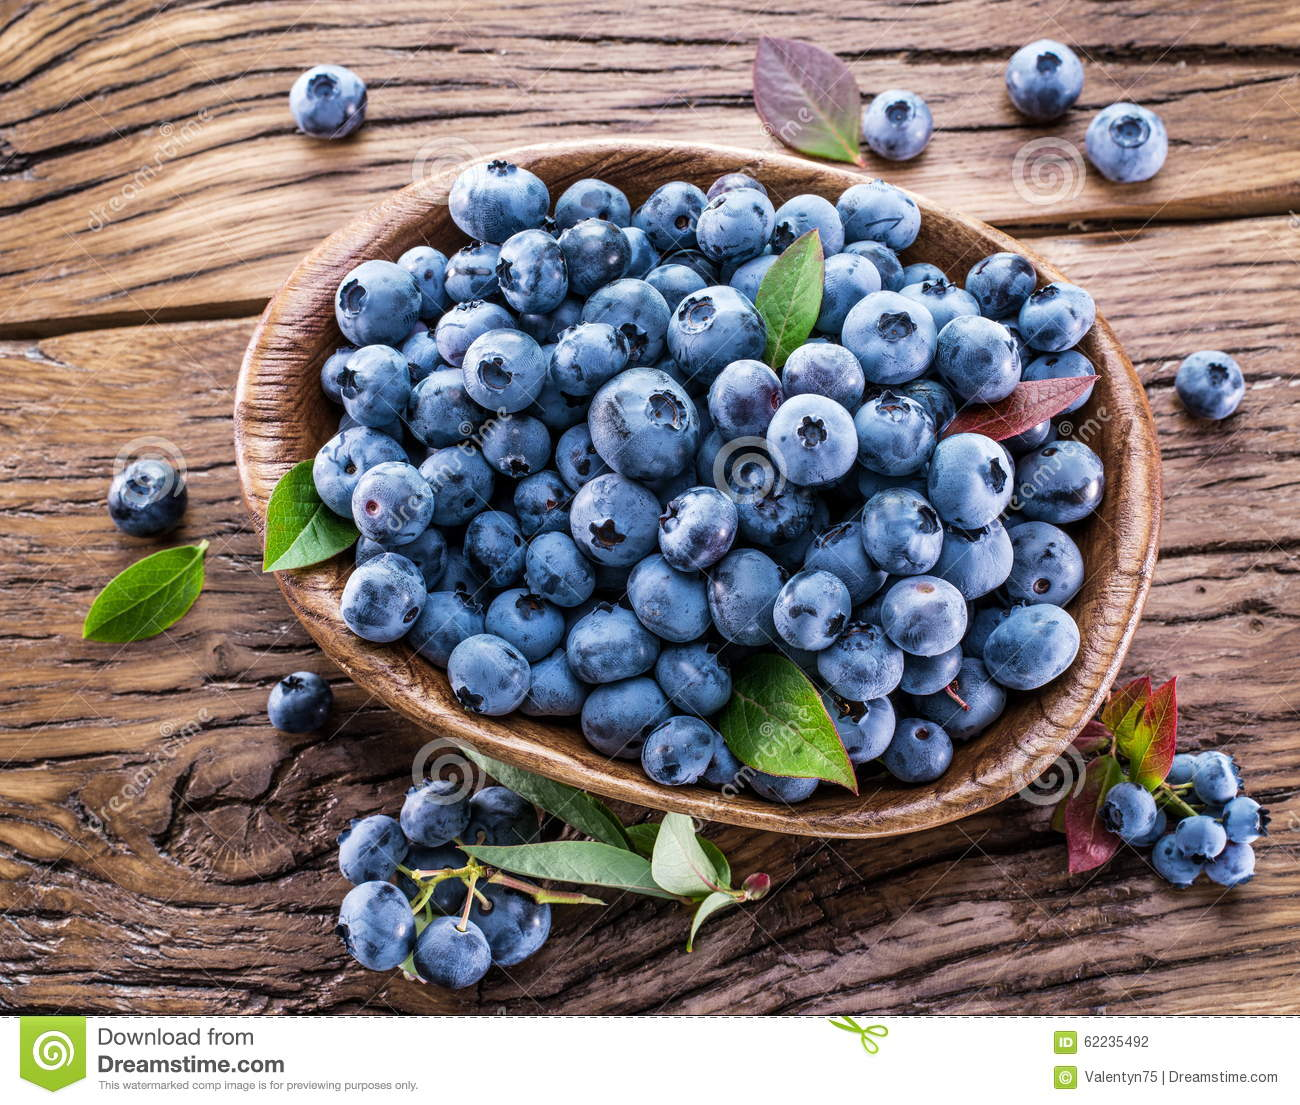 how to tell if blueberries are ripe